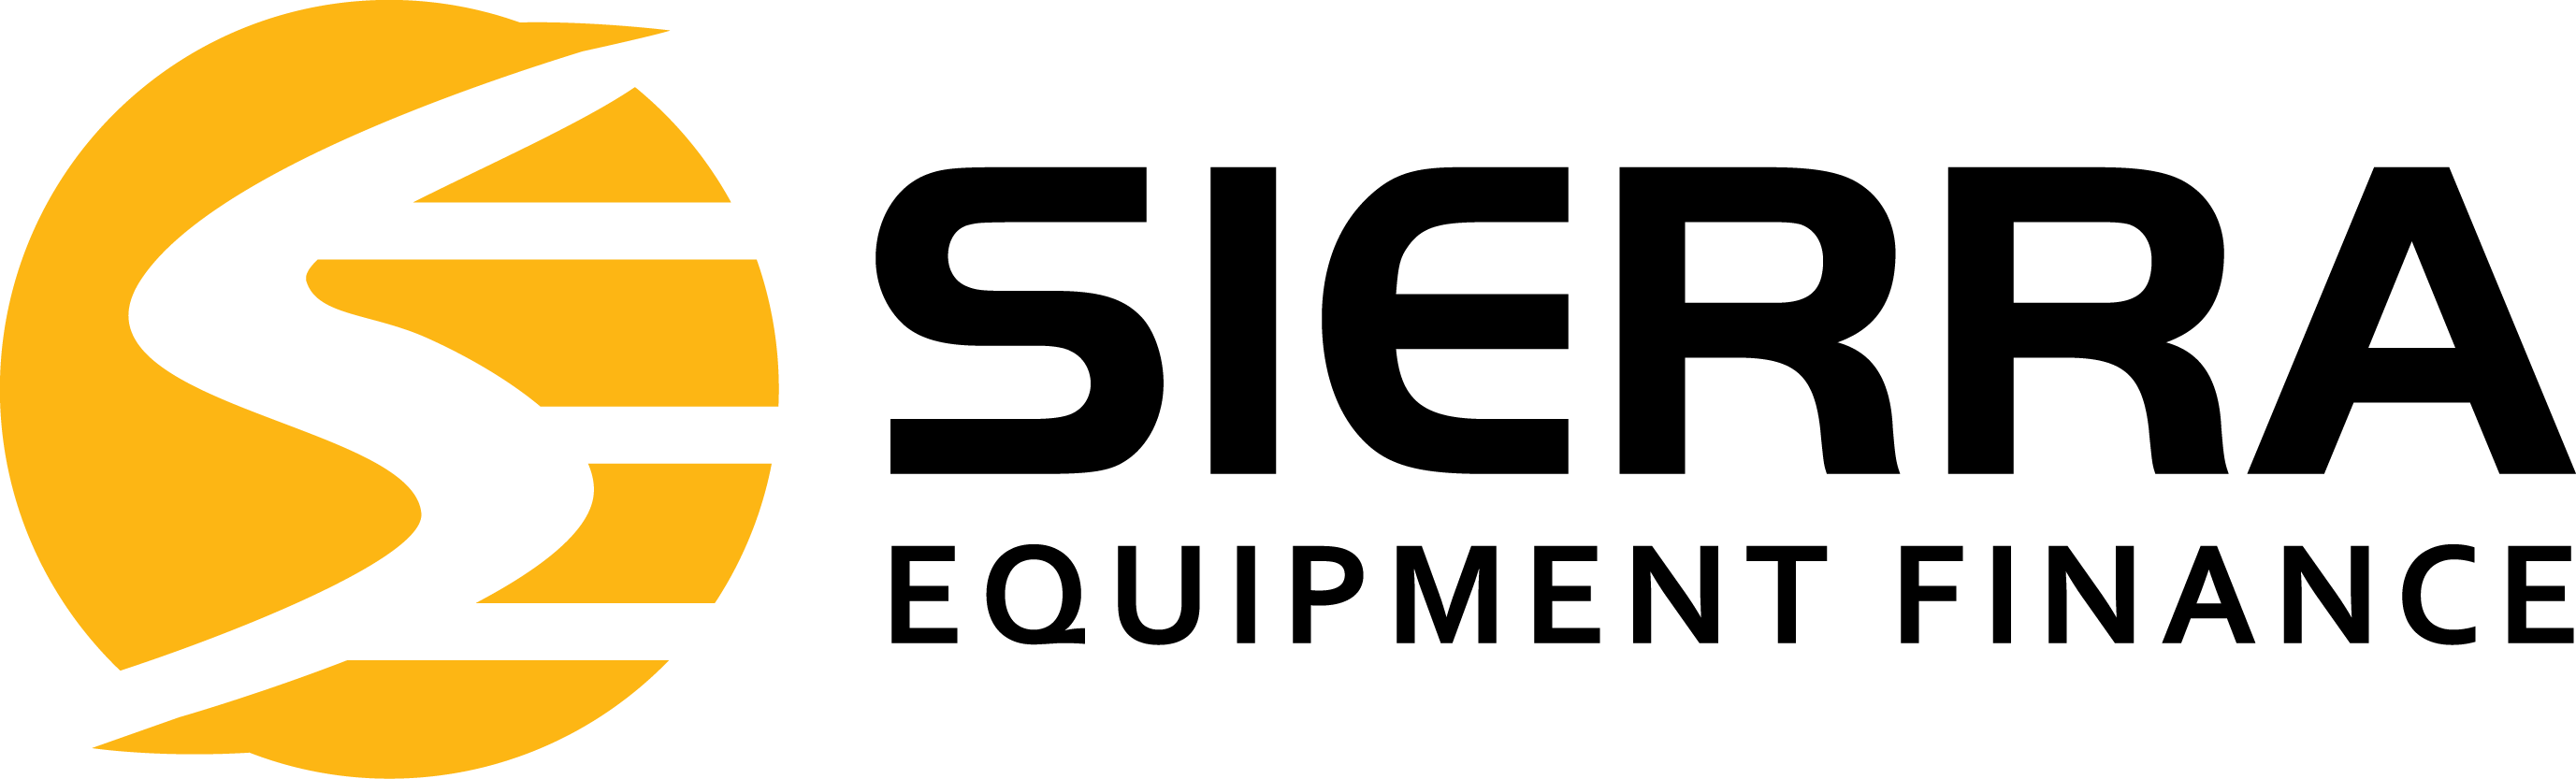 Sierra Equipment Finance 2